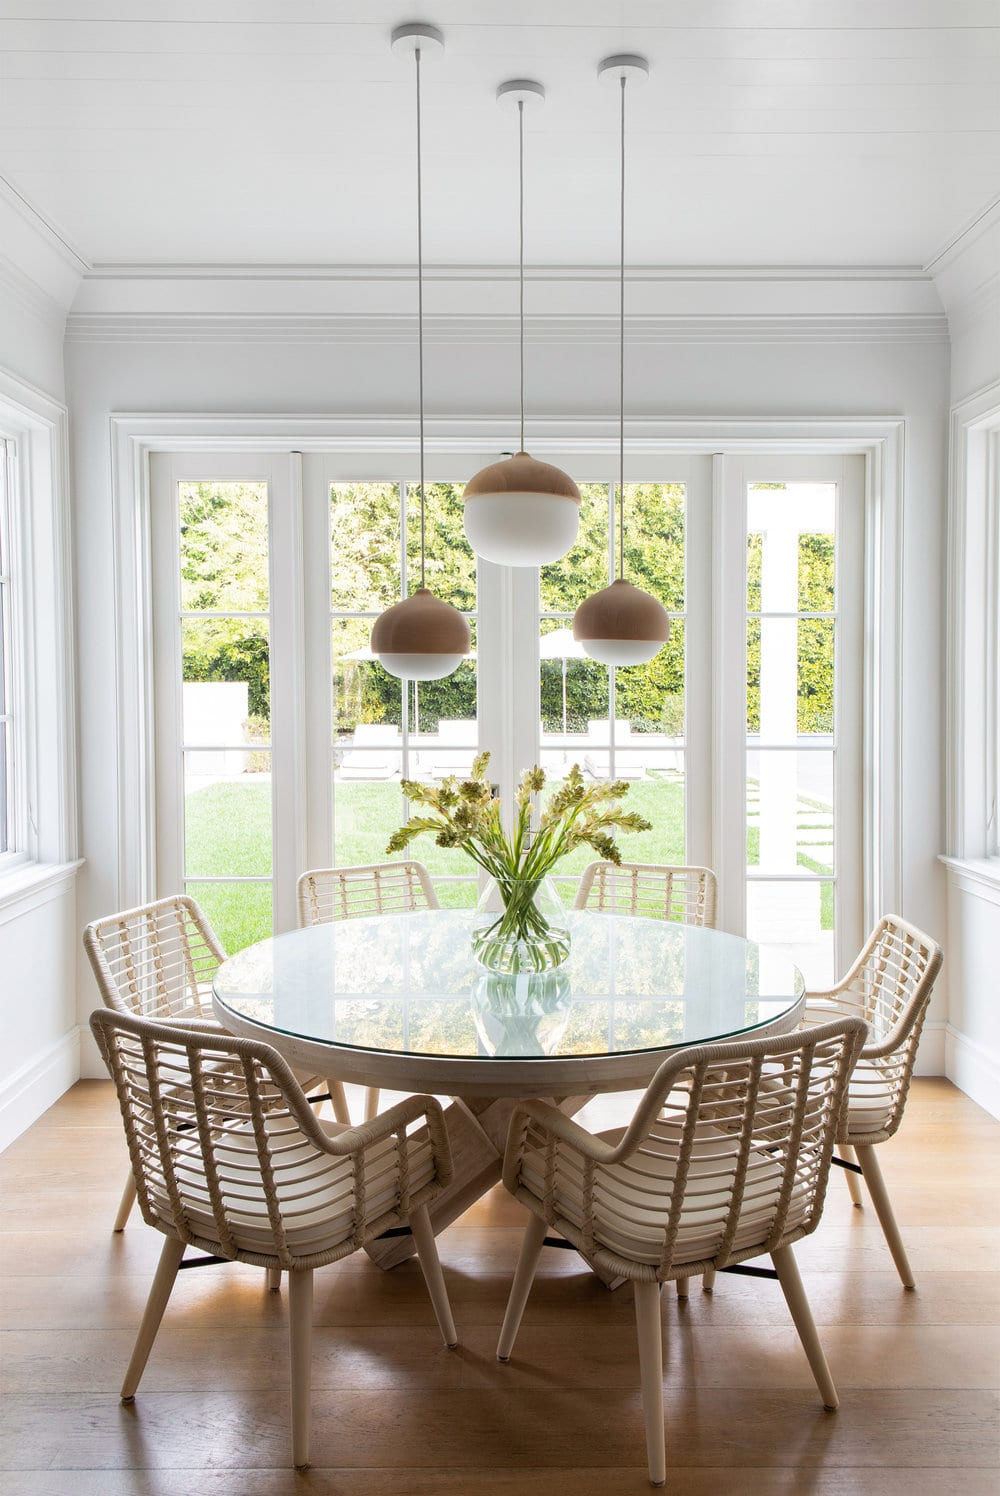 round pedestal table with rattan chairs and modern light fixture